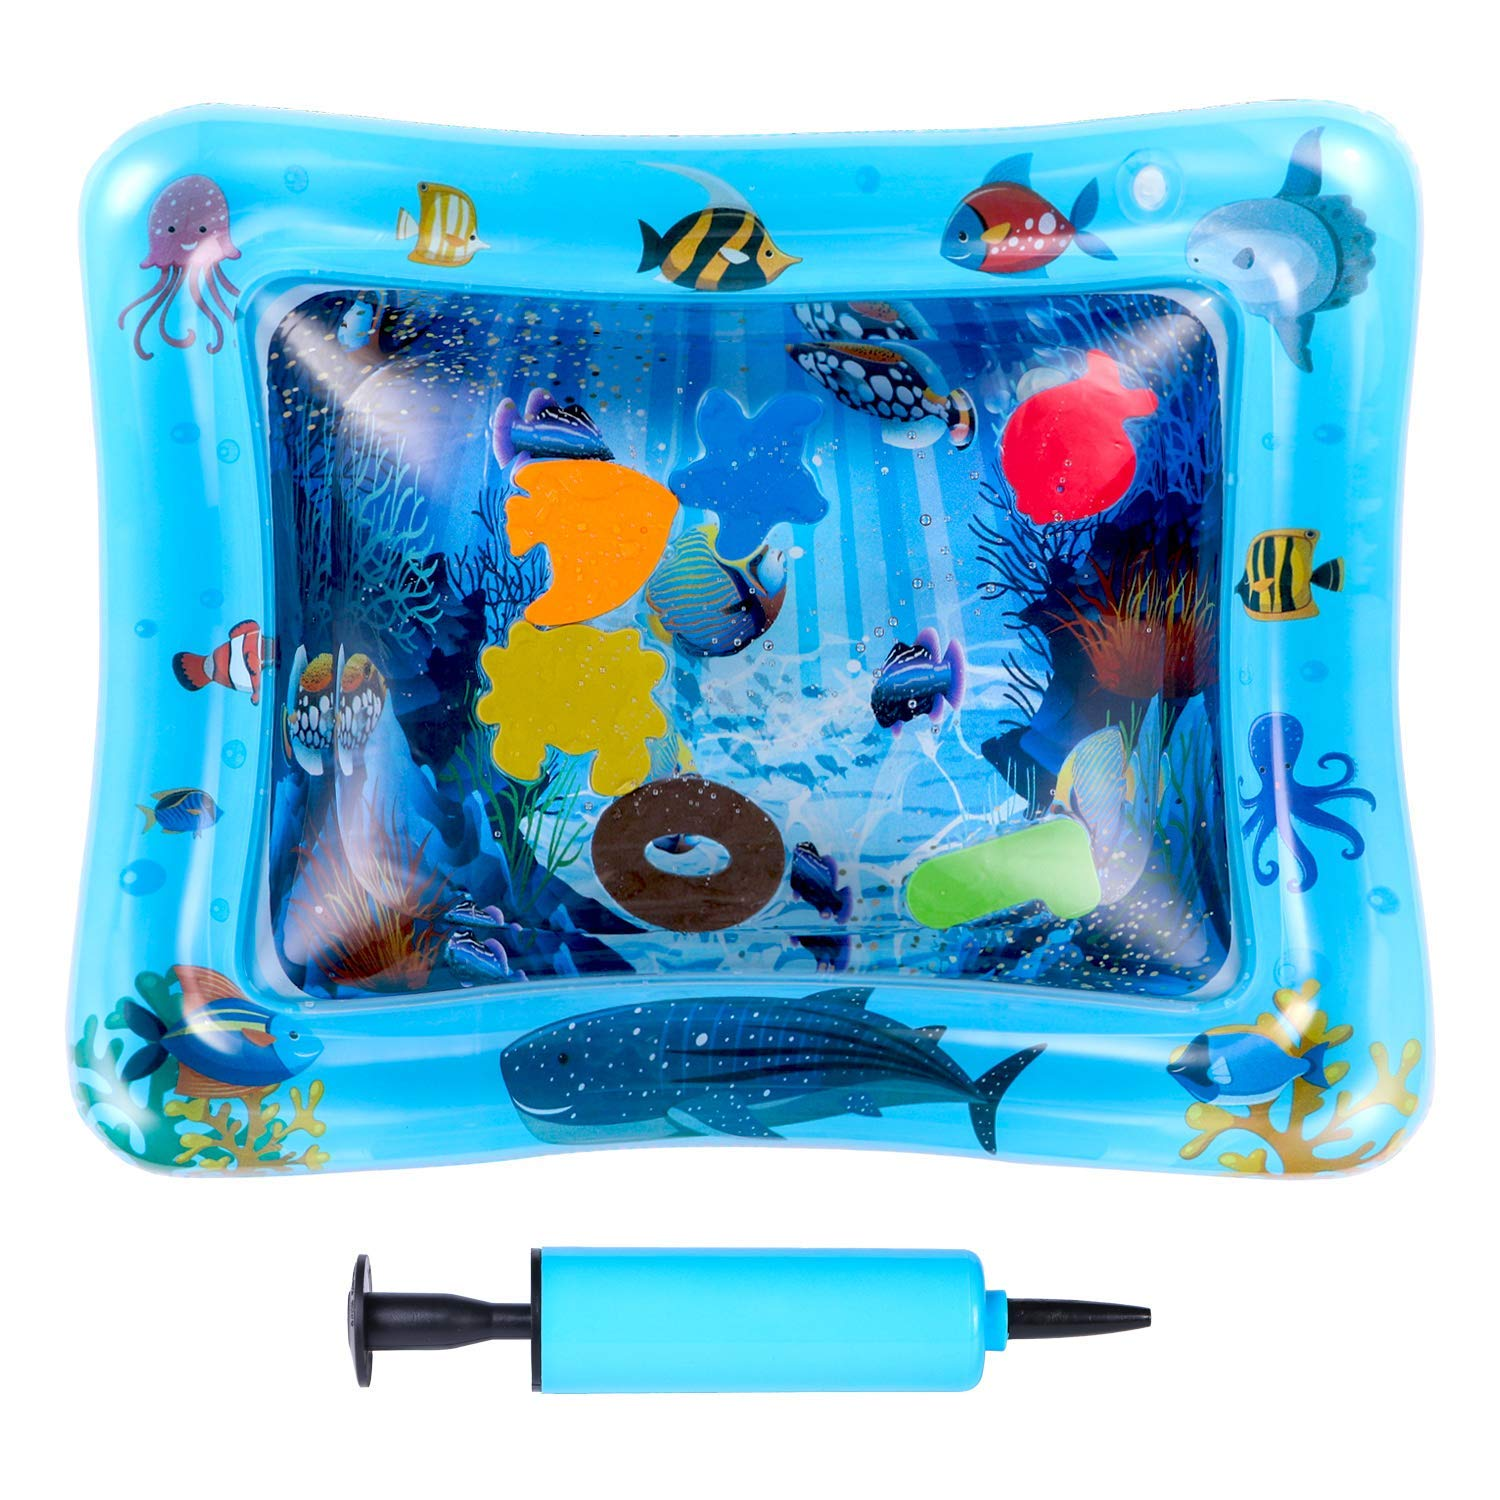 Fun Water Play Mat-Perfect Activity Play Center Promotes Infant Visual Stimulation 26x20 Inflatable Tummy Time Water Mat for Baby